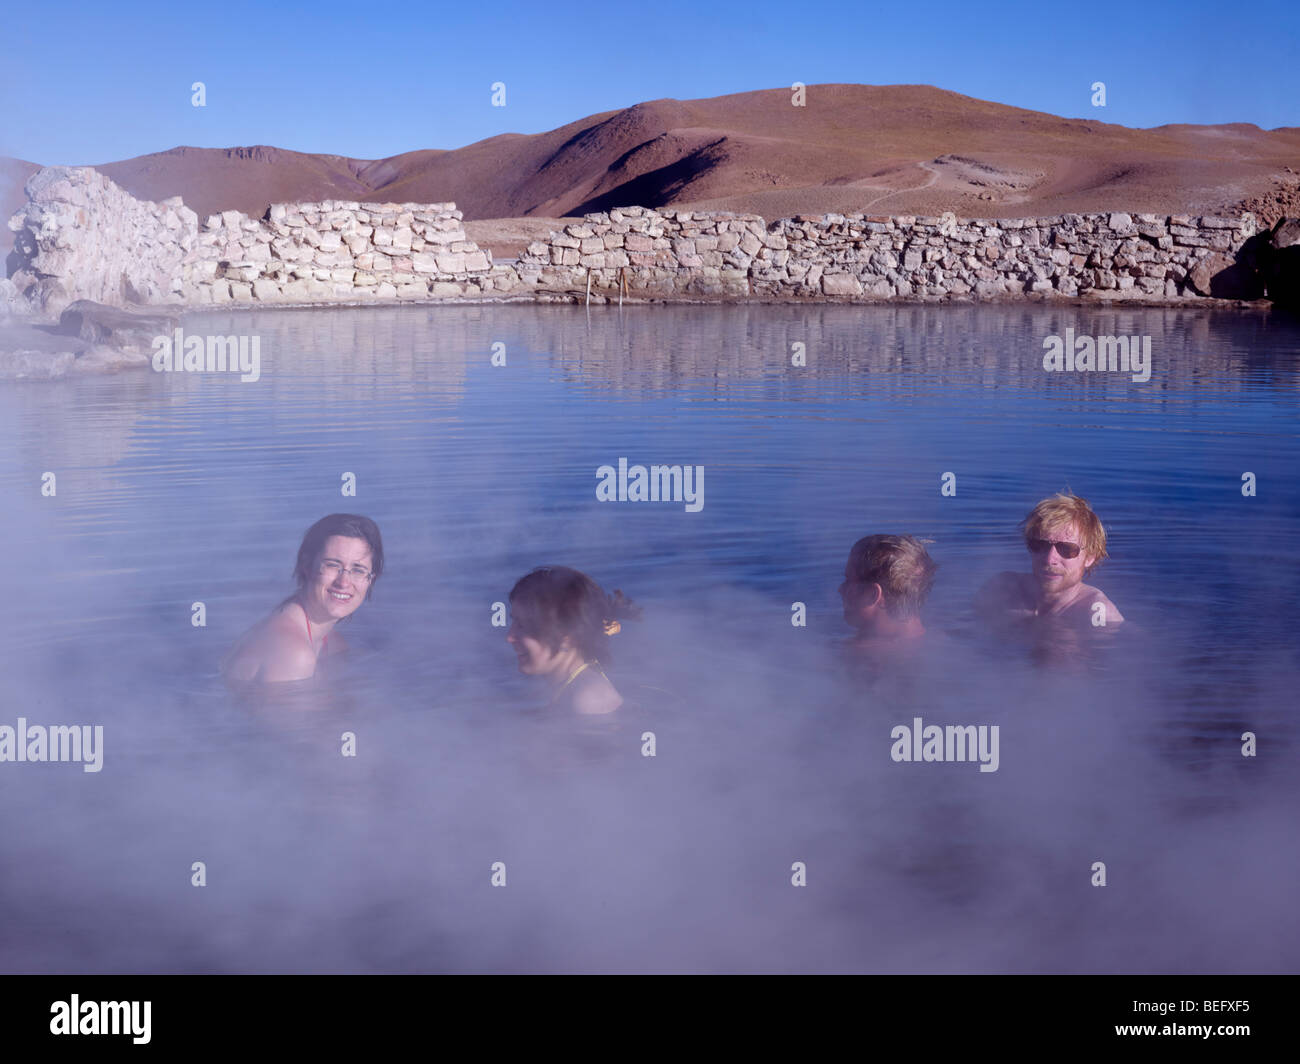 Tourists in the thermal springs at the Tatio Geysers in the Atacama Desert, Chile. - Stock Image